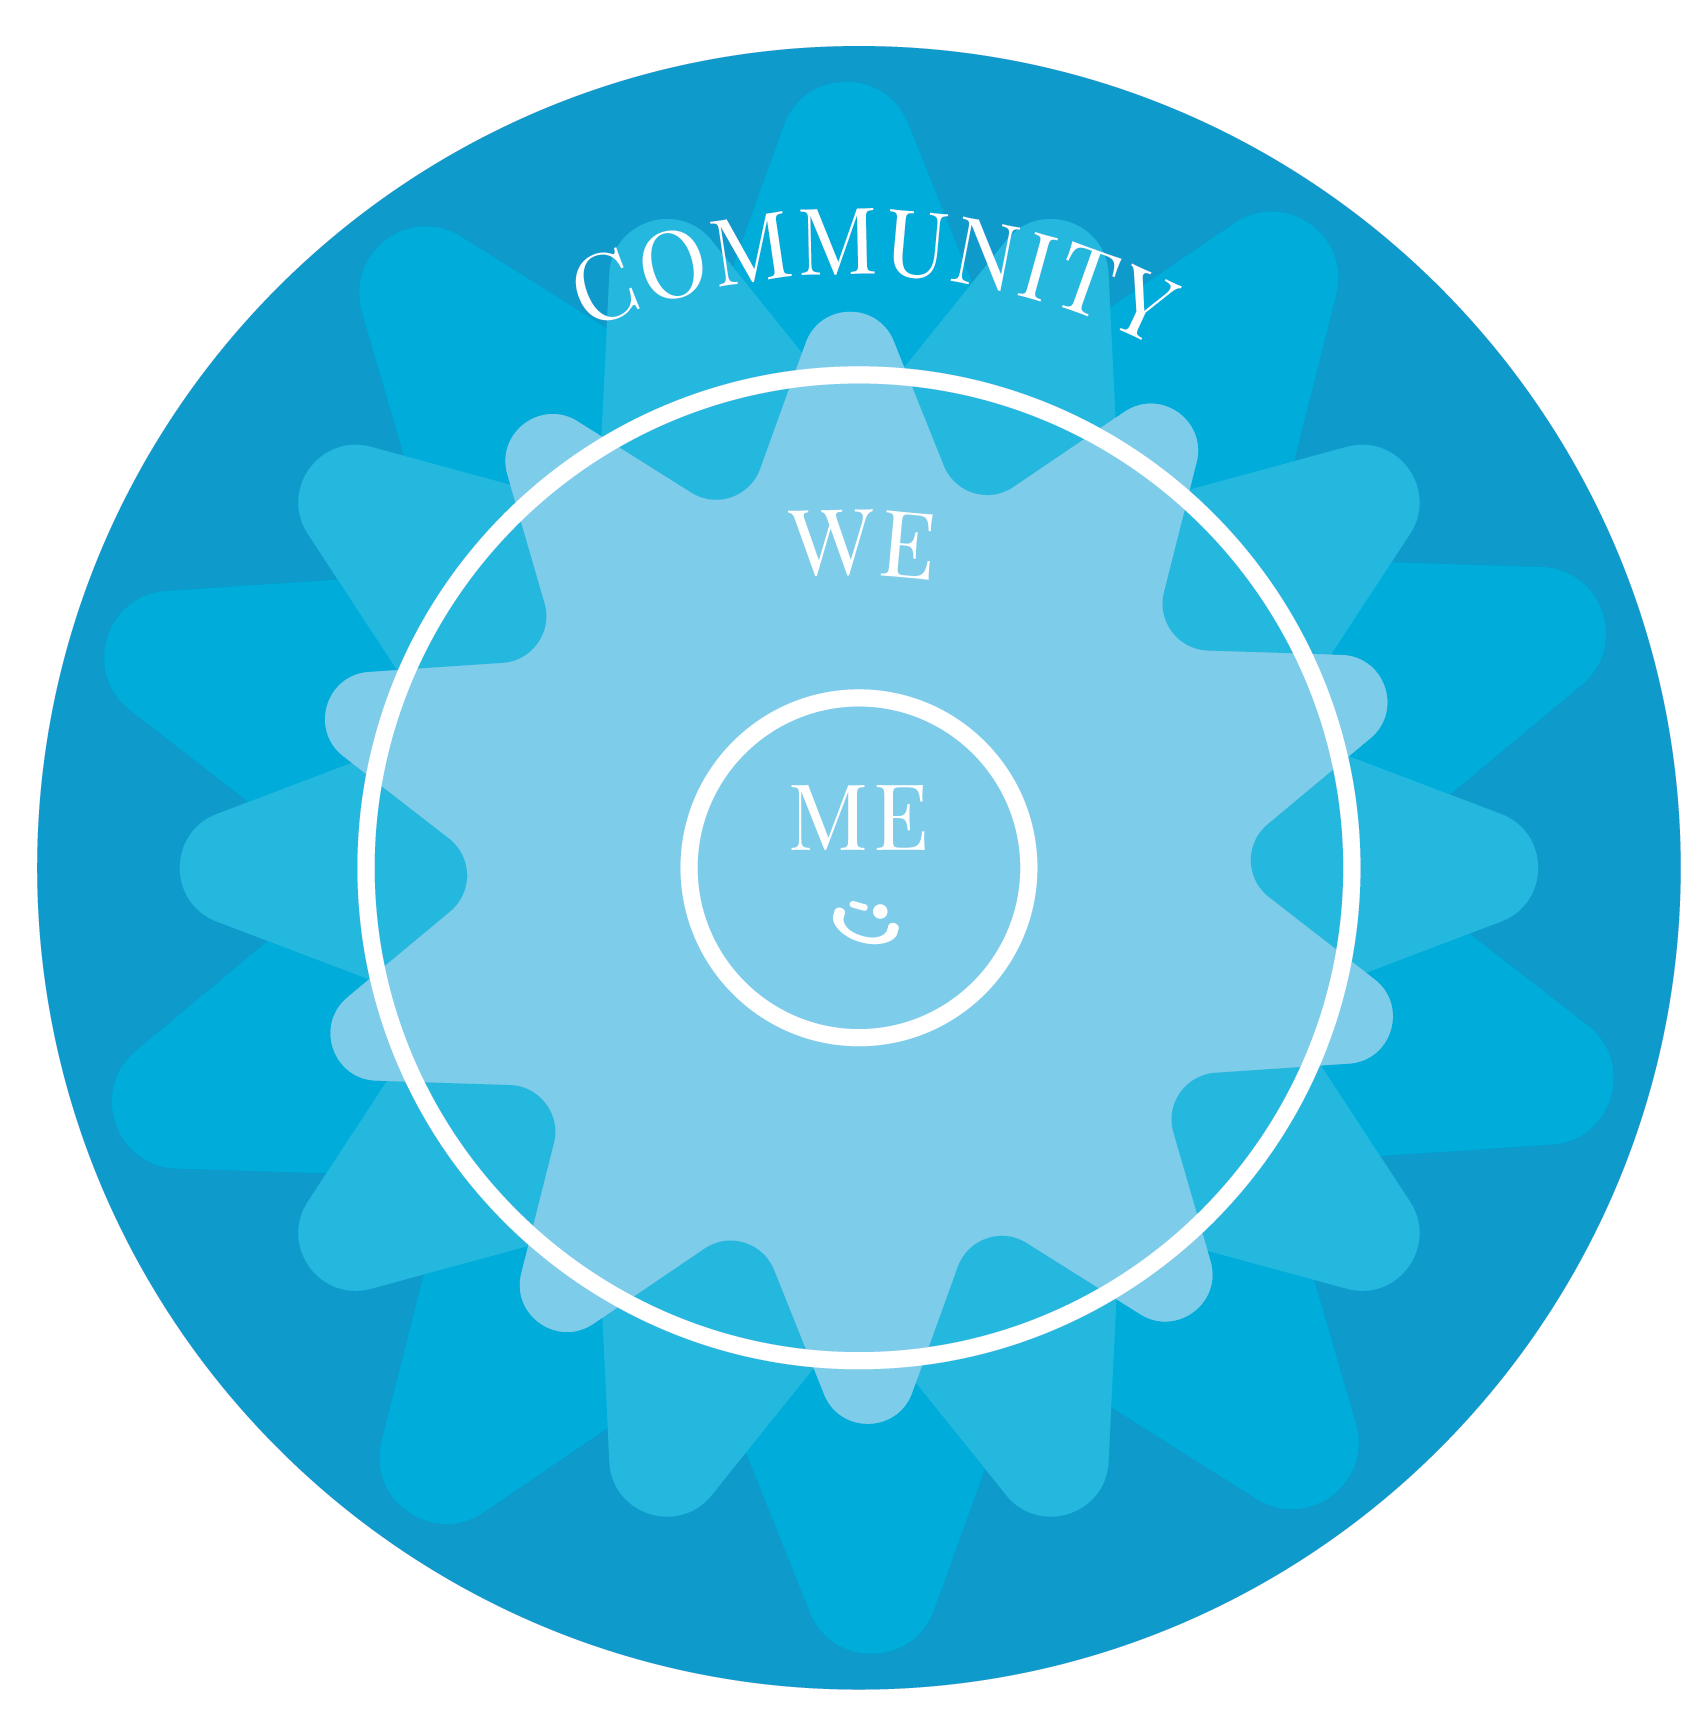 Delivering Happiness Me, We, Community